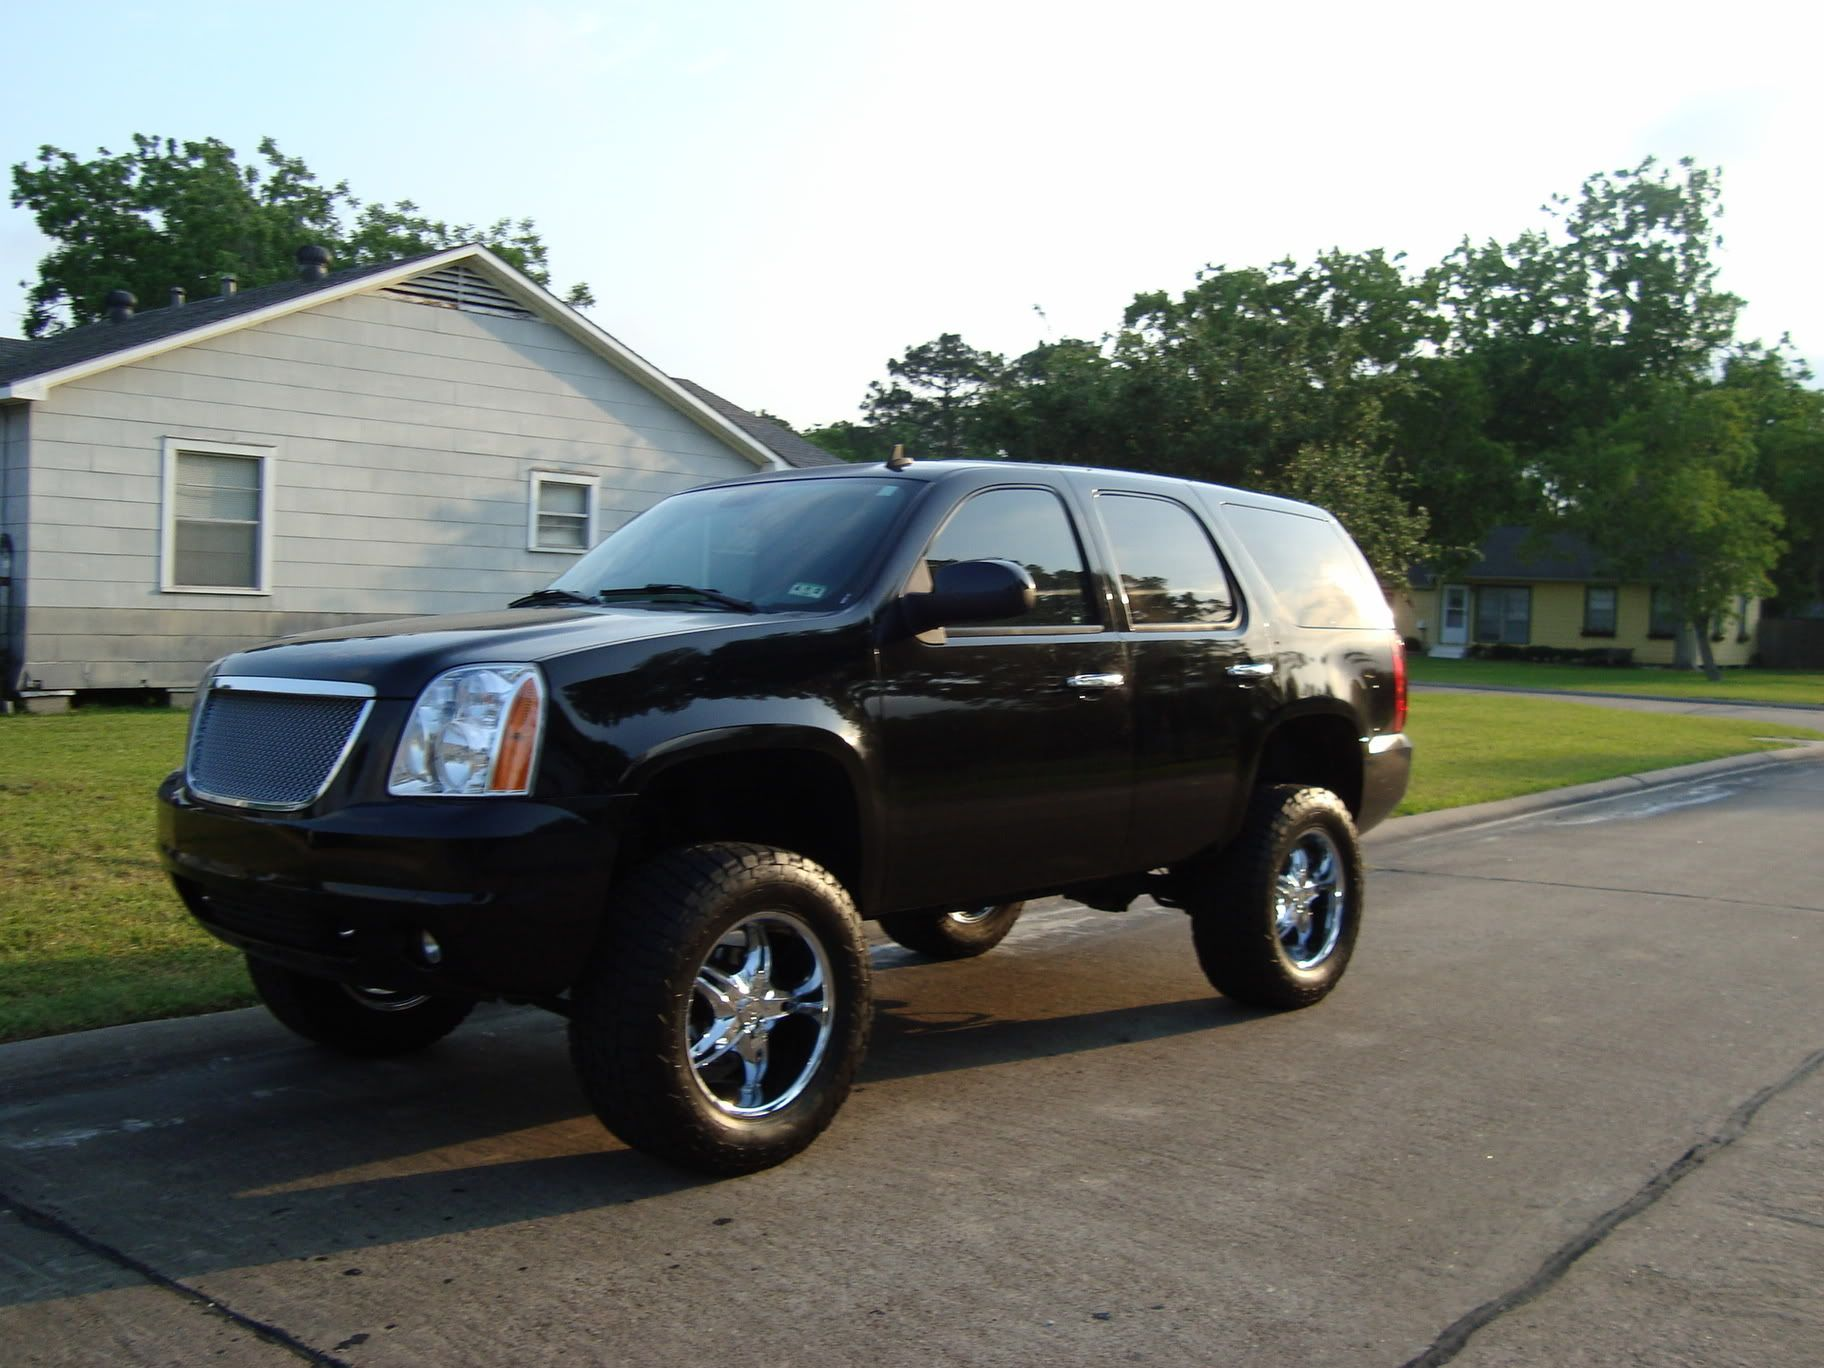 Lifted Gmc Yukon Finally Decided On Daddys New Ride Sept Can T Come Any Sooner Gmc Yukon Gmc 2008 Gmc Yukon